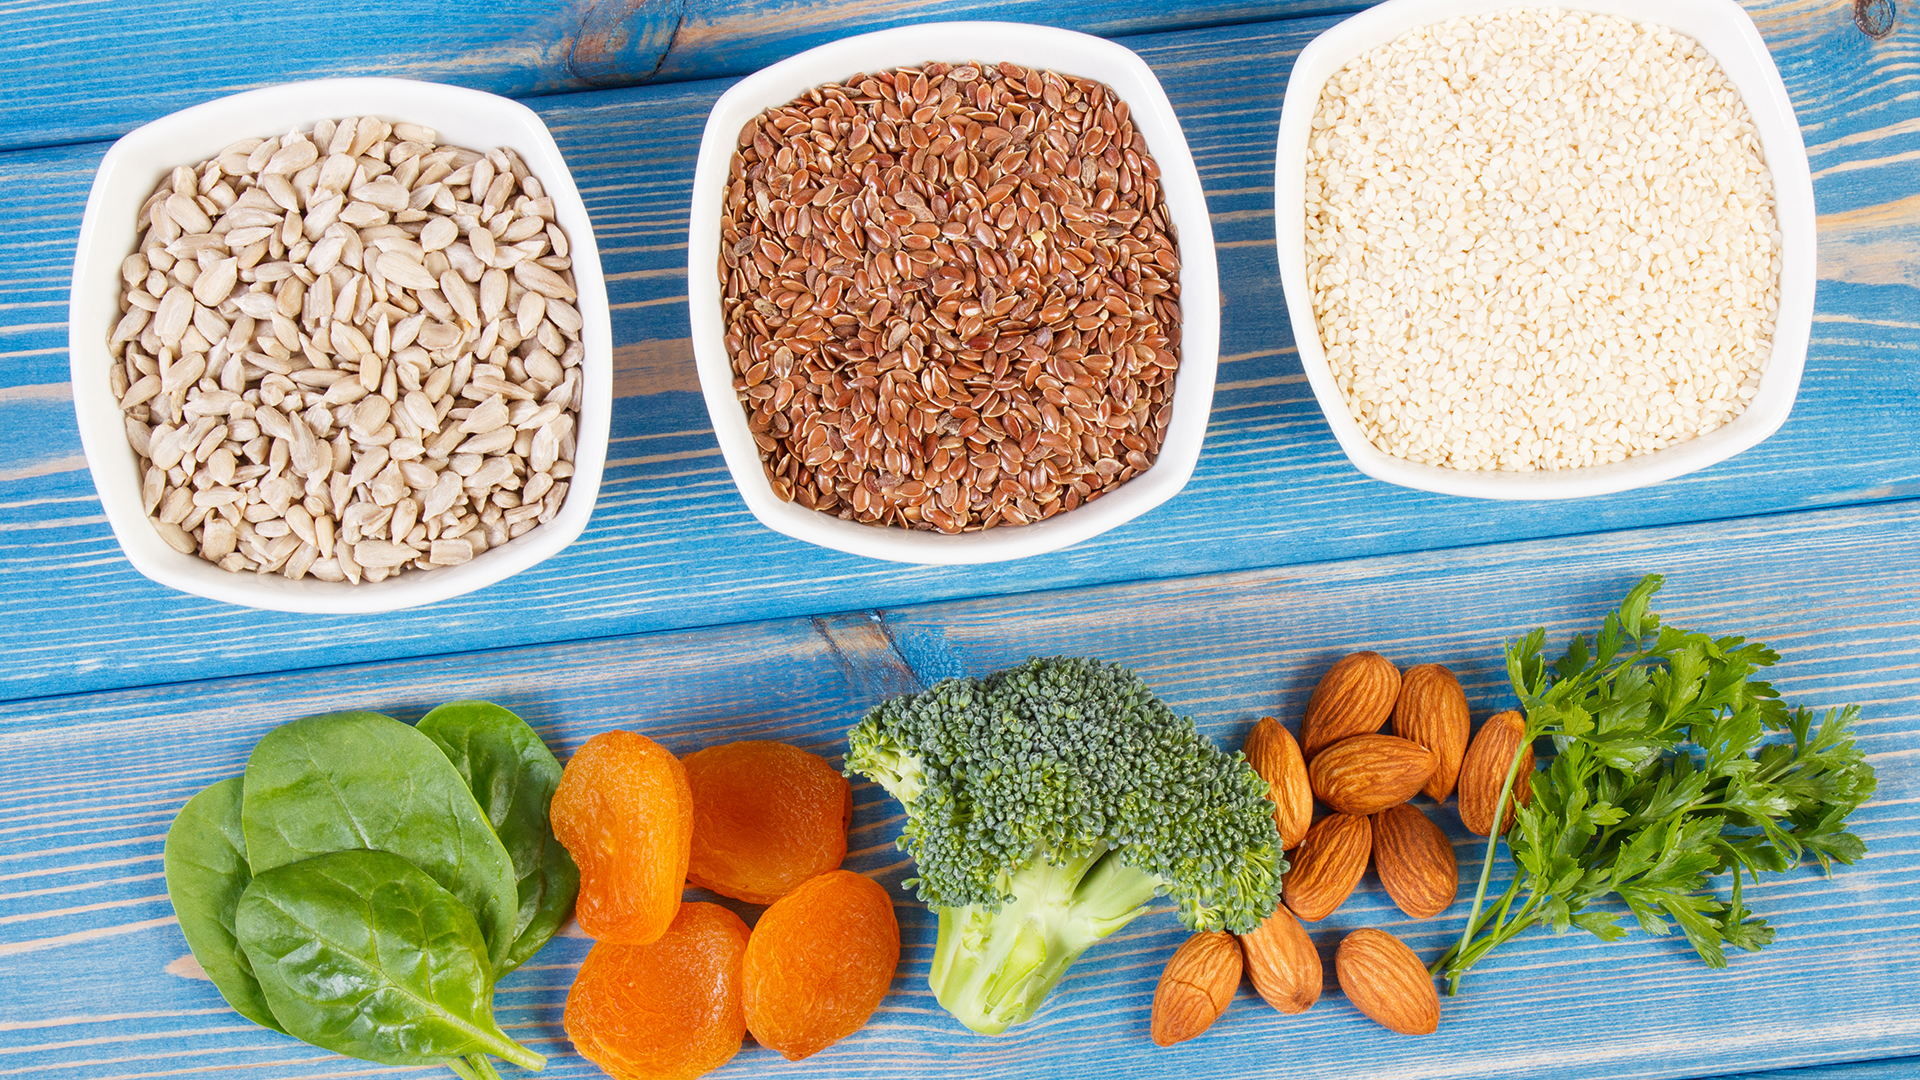 Products and ingredients containing calcium, minerals and dietary fiber, healthy nutrition